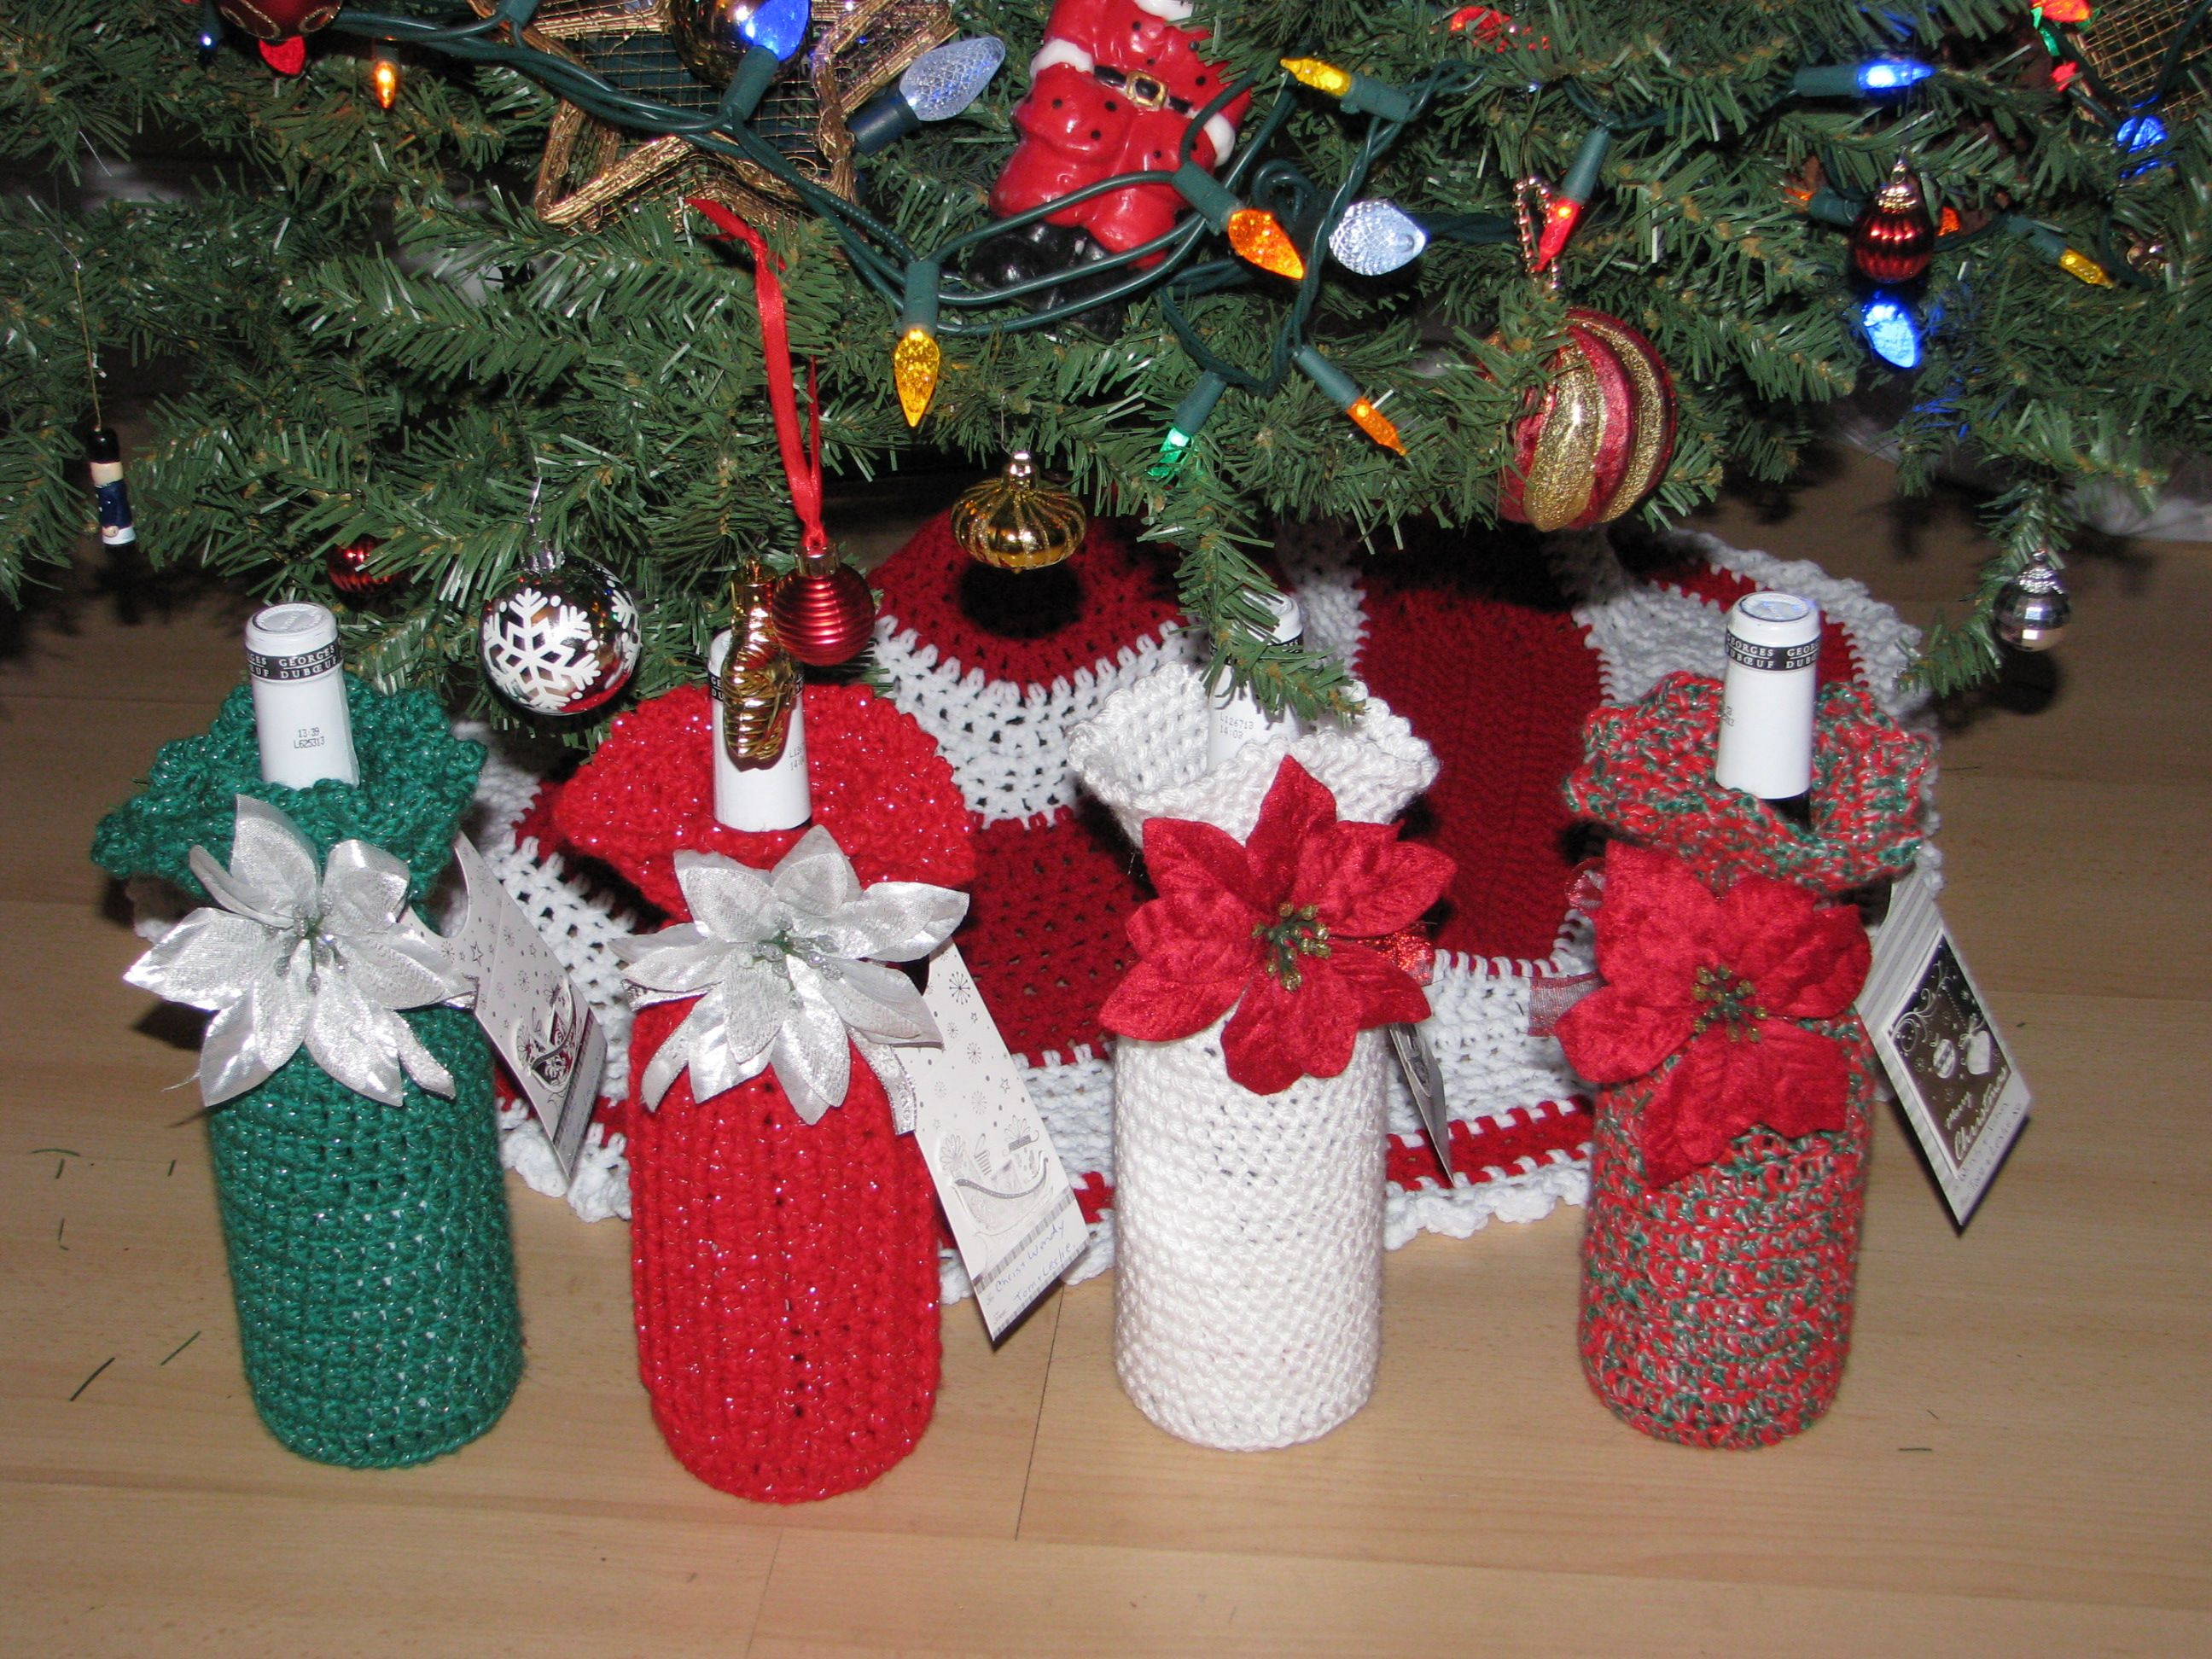 Crochet Christmas Wine Bottle Covers Christmas Crochet Christmas Wine Bottle Covers Diy Crochet And Knitting